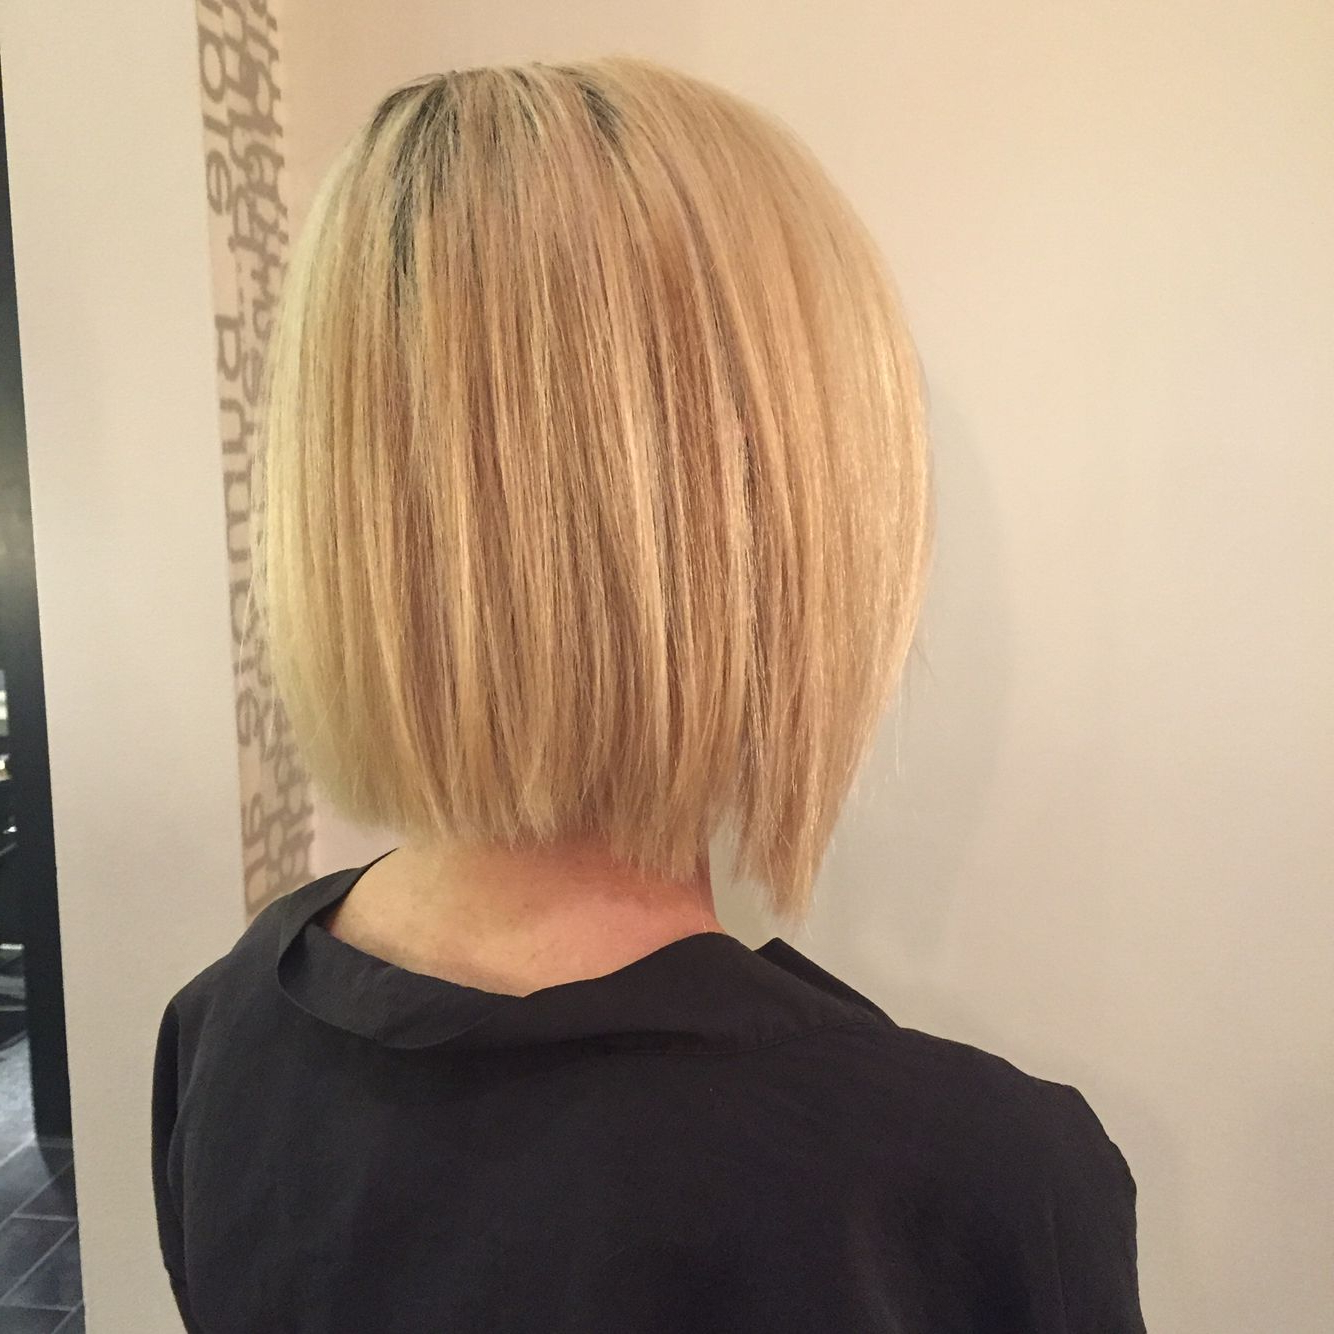 Popular Textured Classic Bob Hairstyles With Pin On Hairstyles (View 16 of 20)